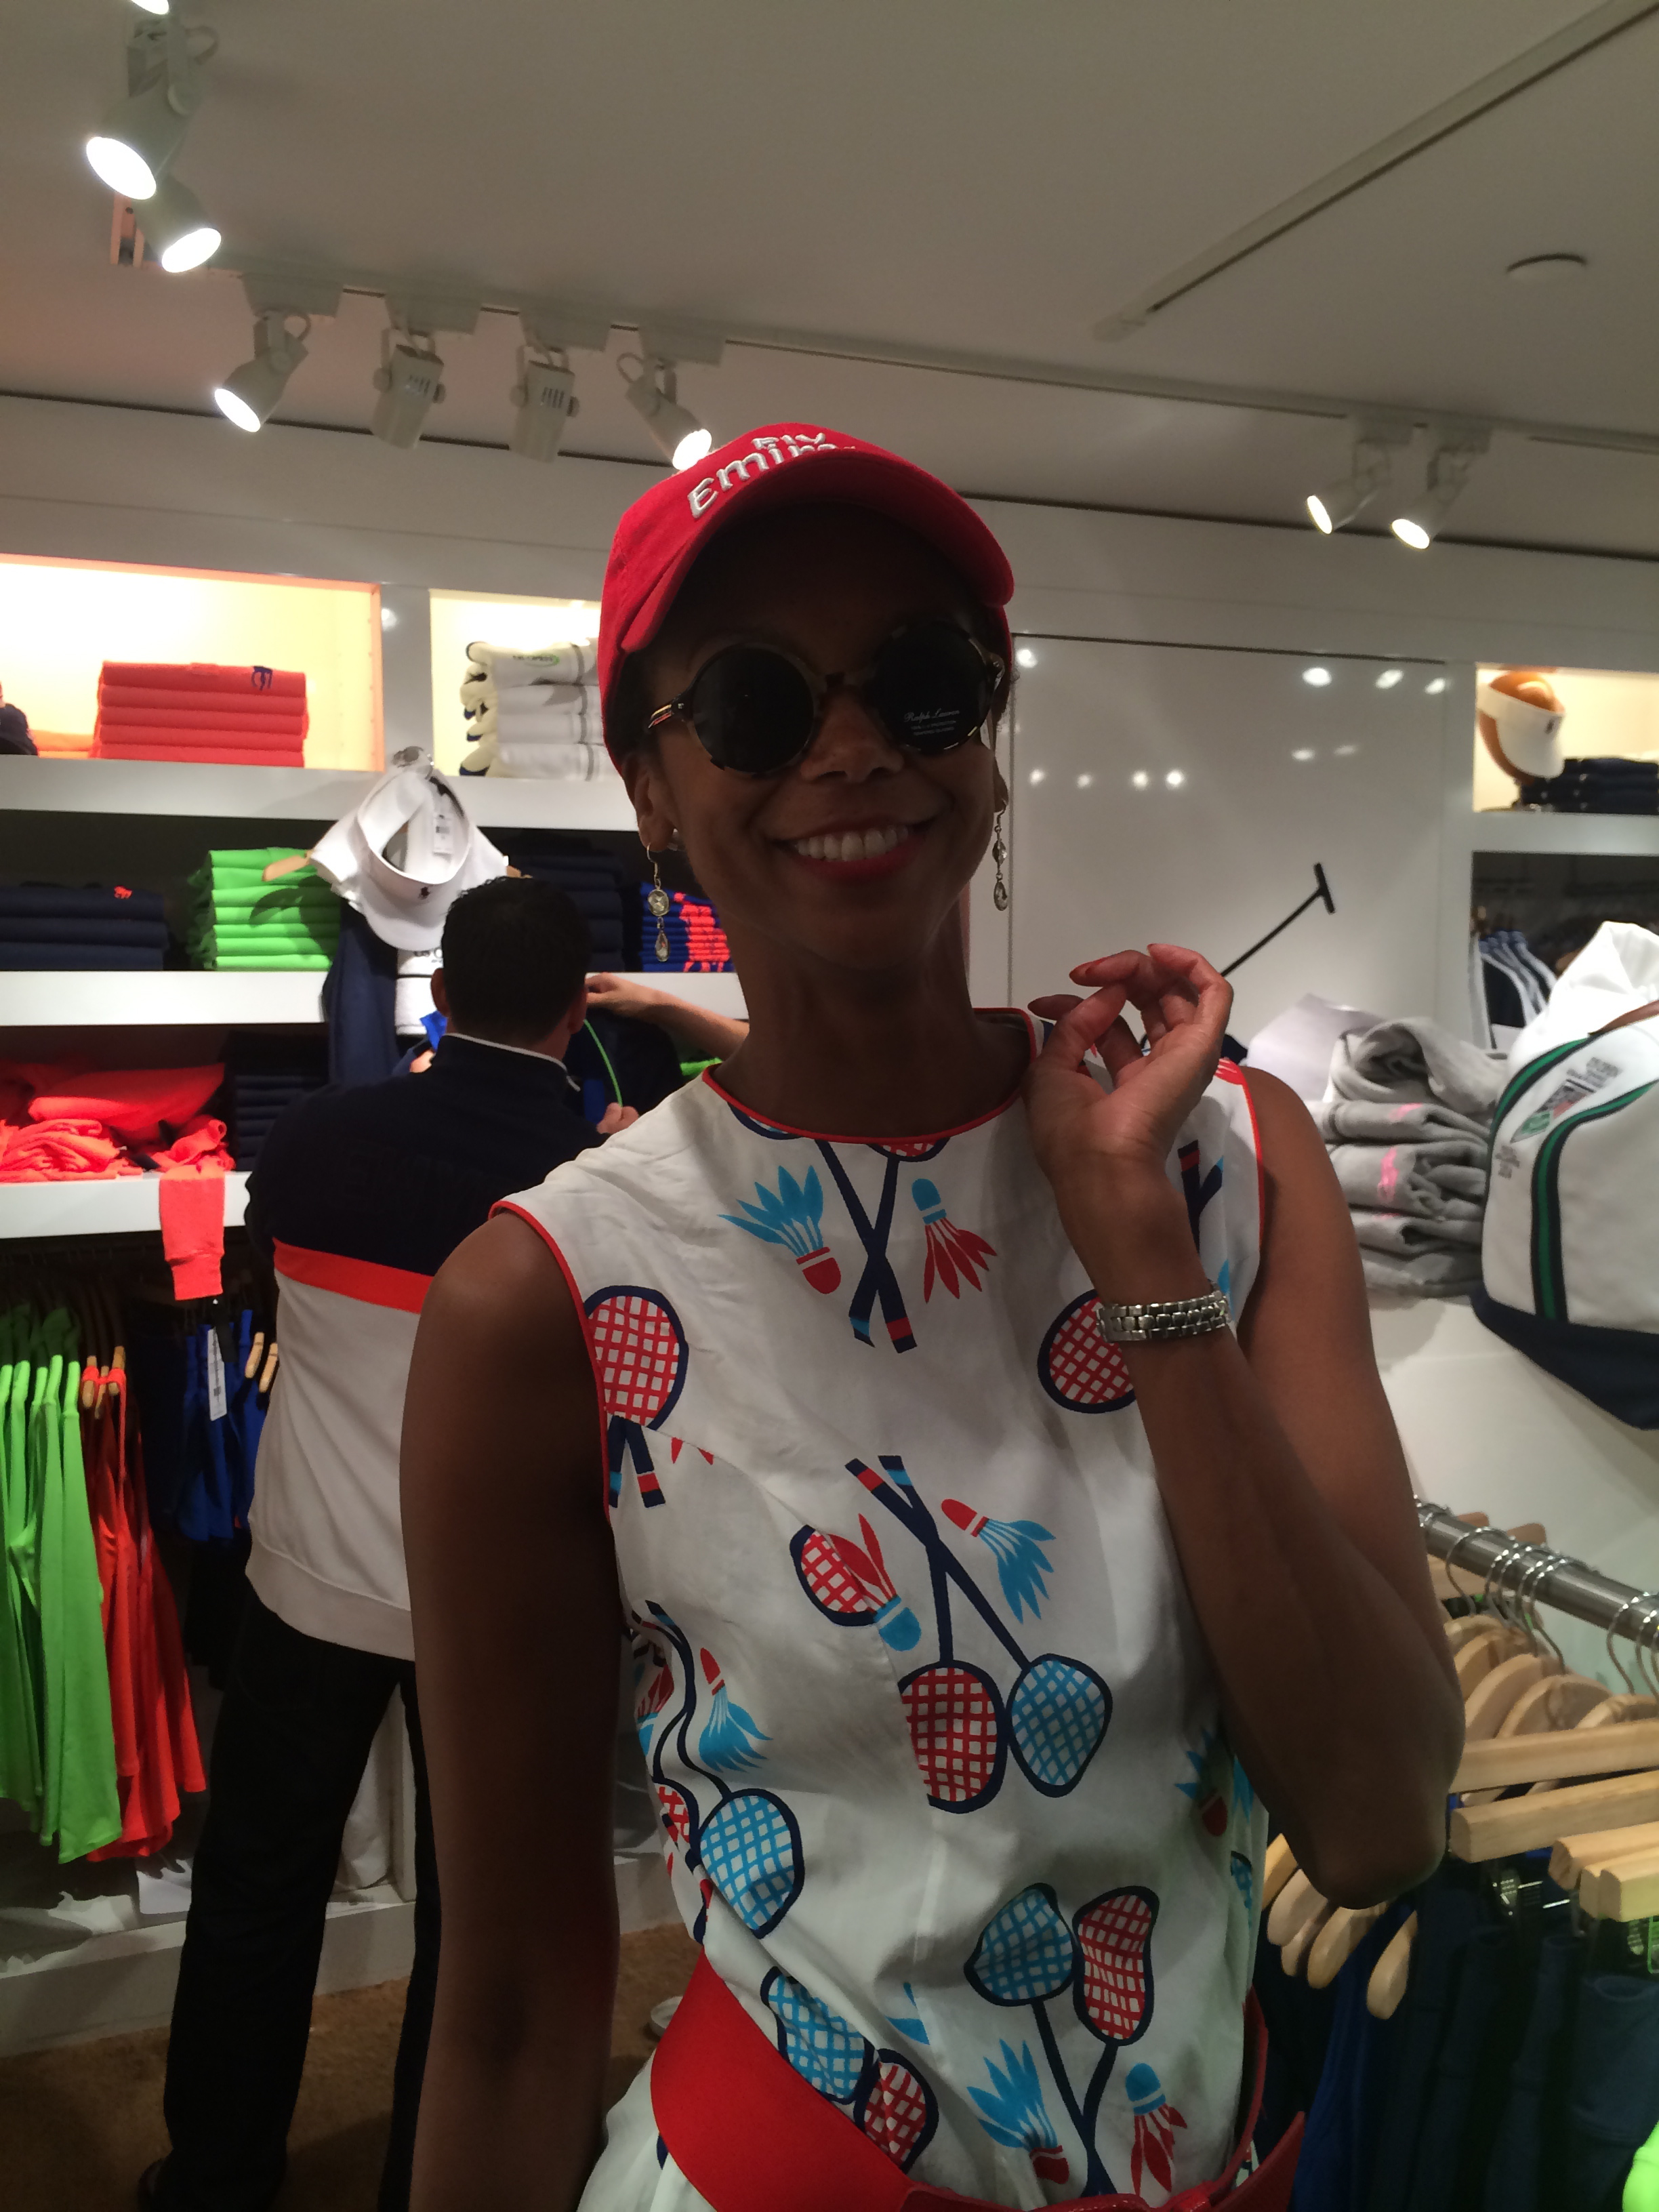 Playtime at the Ralph Lauren Polo store at the stadium.